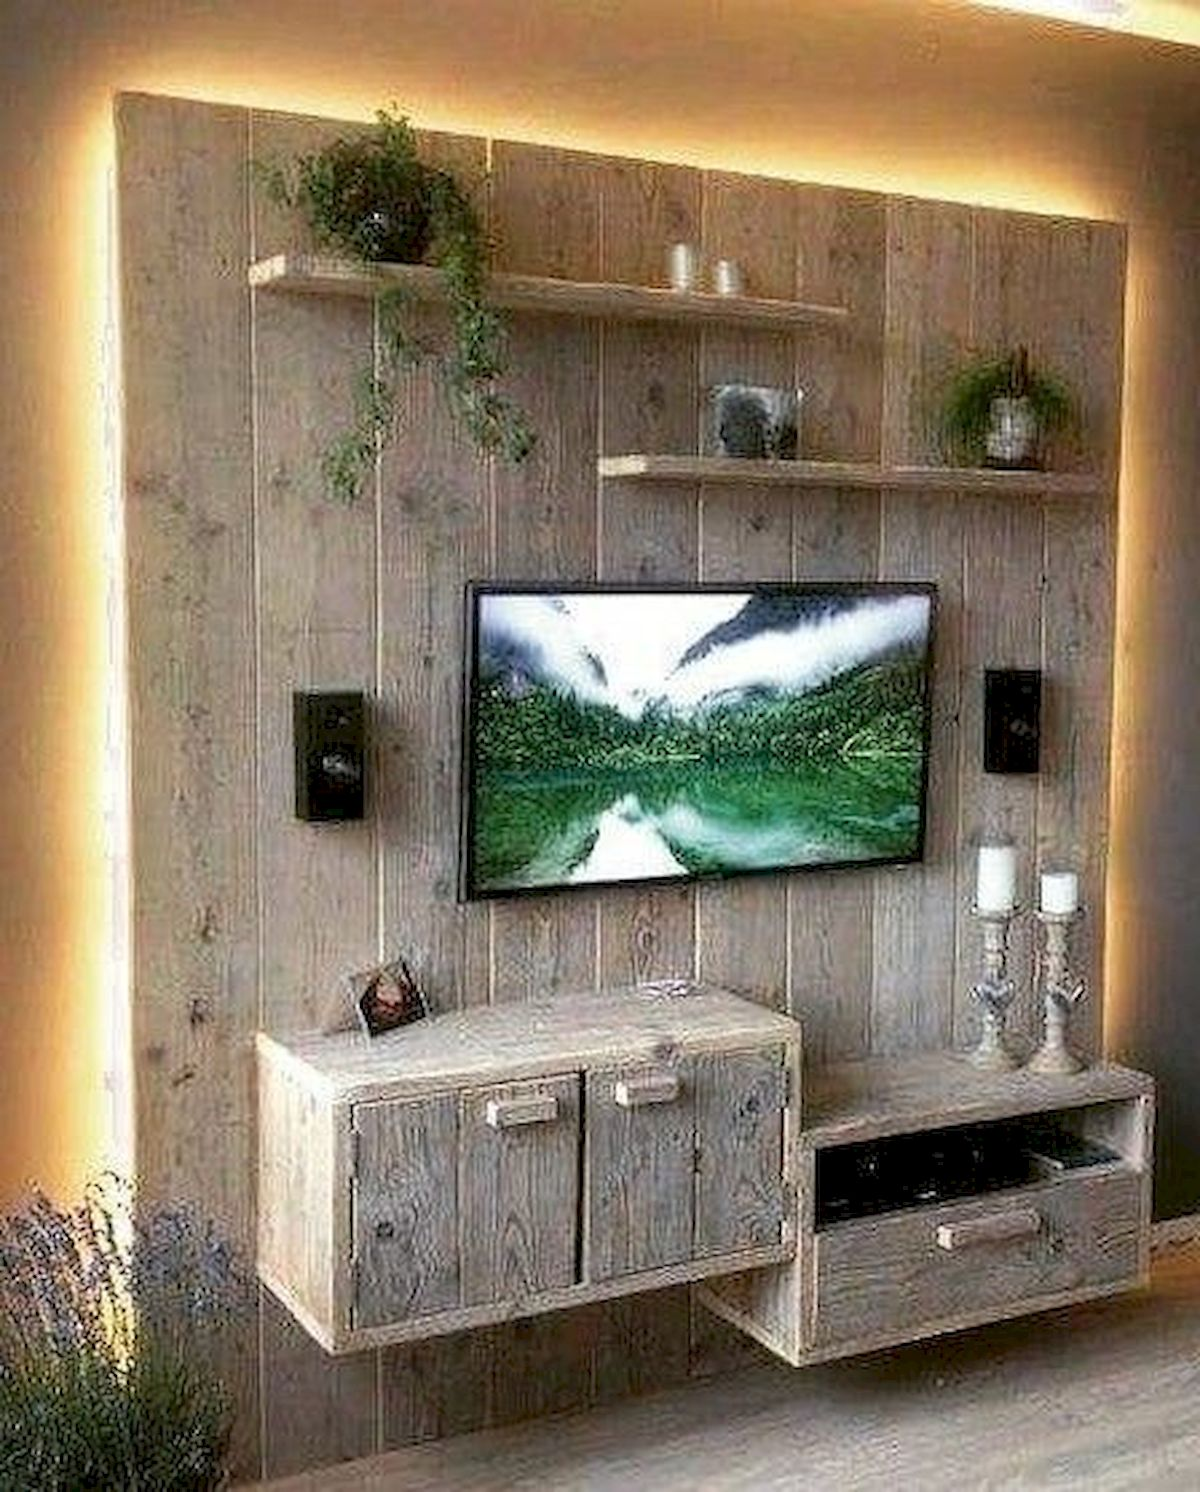 50 Awesome Pallet Furniture TV Stand Ideas For Your Room Home (4)